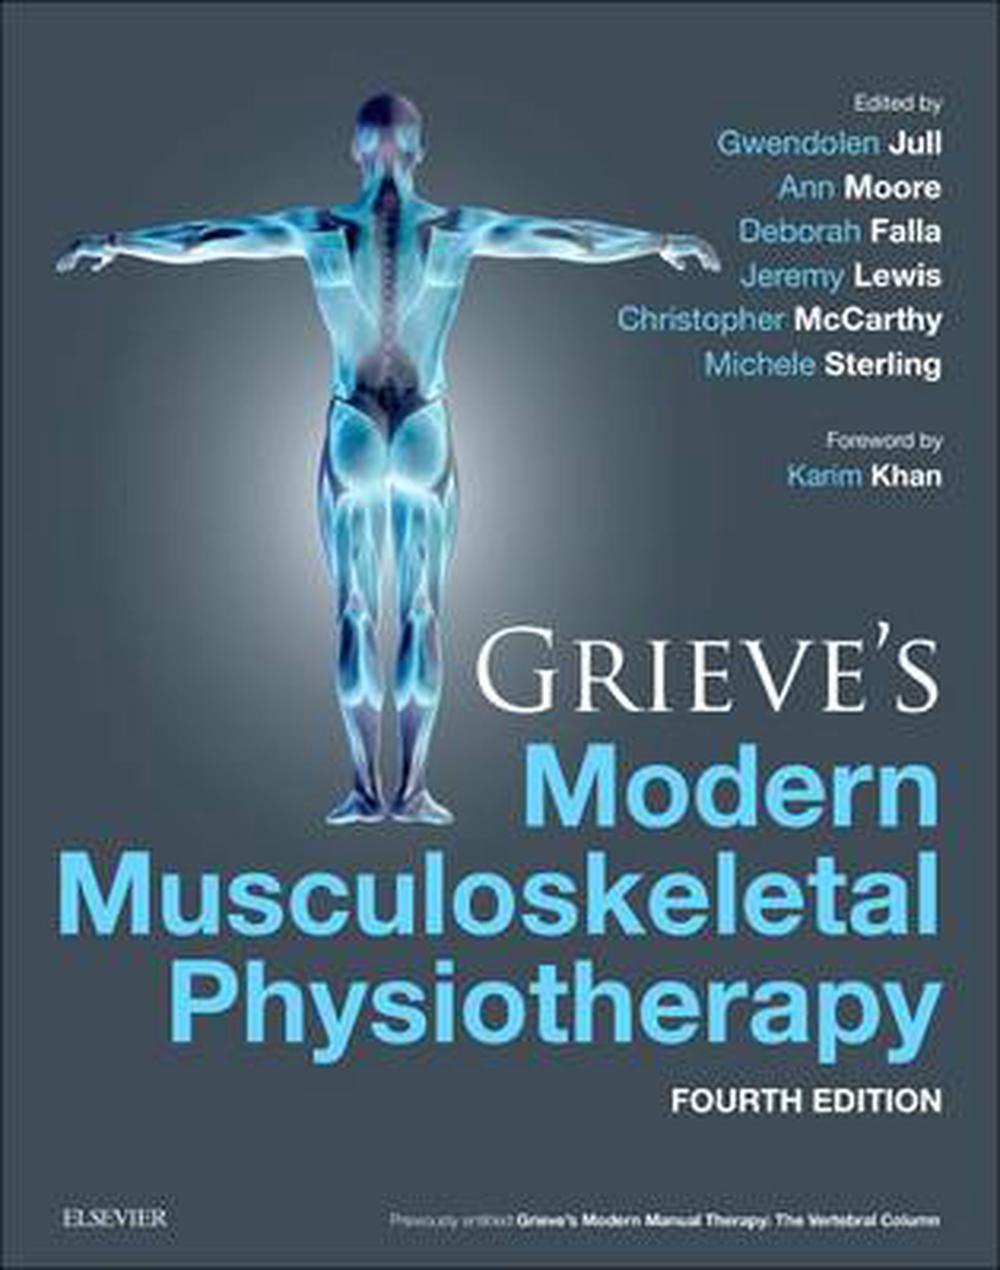 Grieve's Modern Musculoskeletal Physiotherapy, 4th Edition